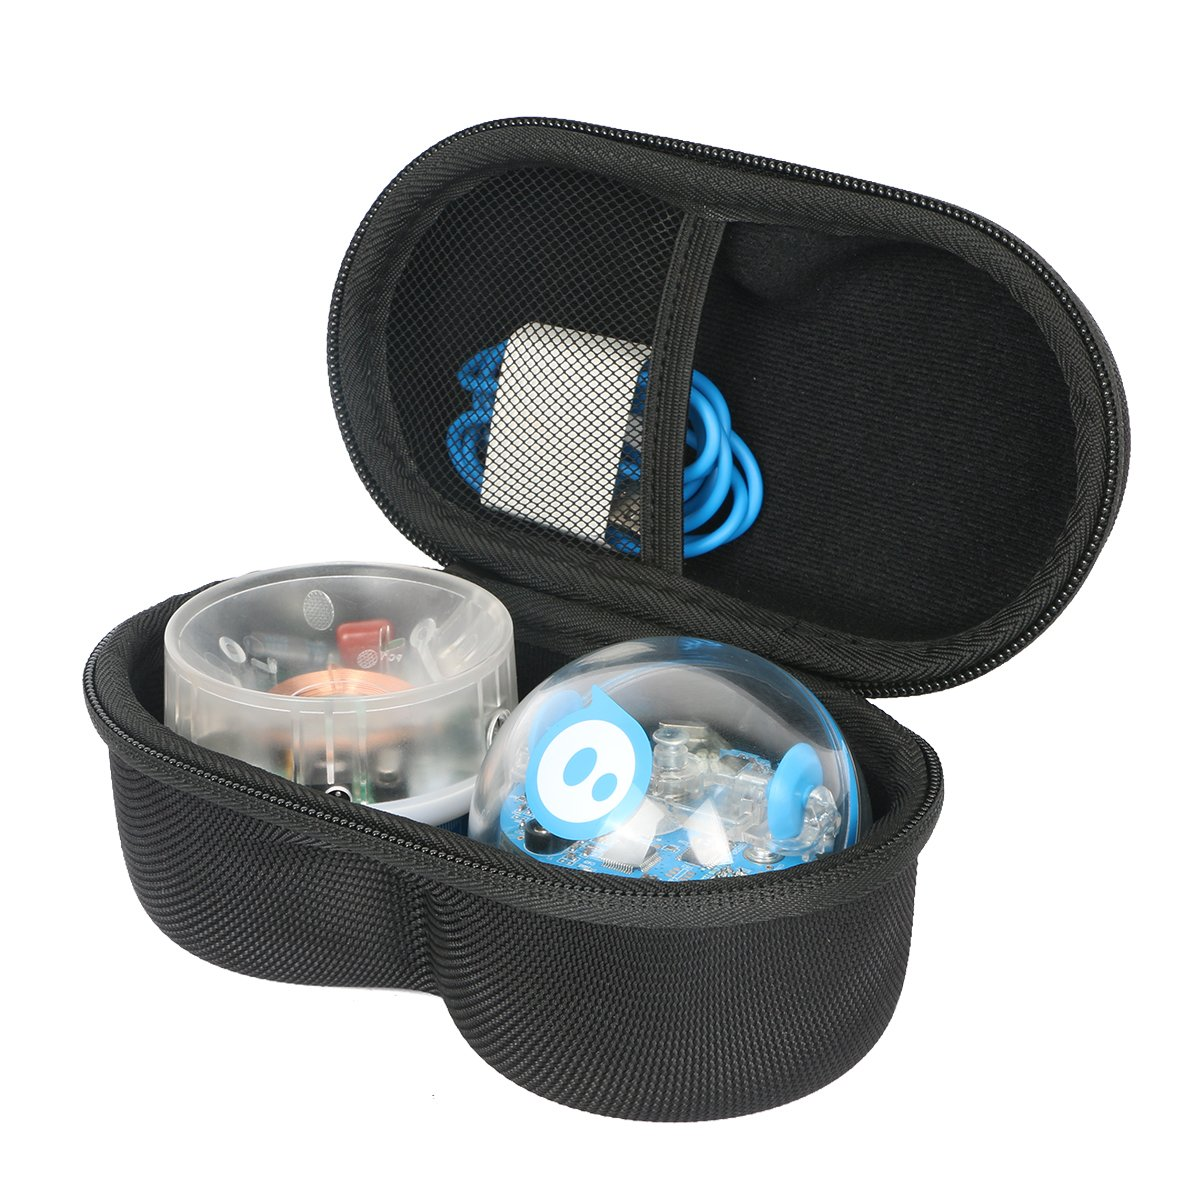 khanka Hard Travel Case for Sphero SPRK+ STEAM Educational Robot / Bolt App-Enabled Robot by khanka (Image #1)